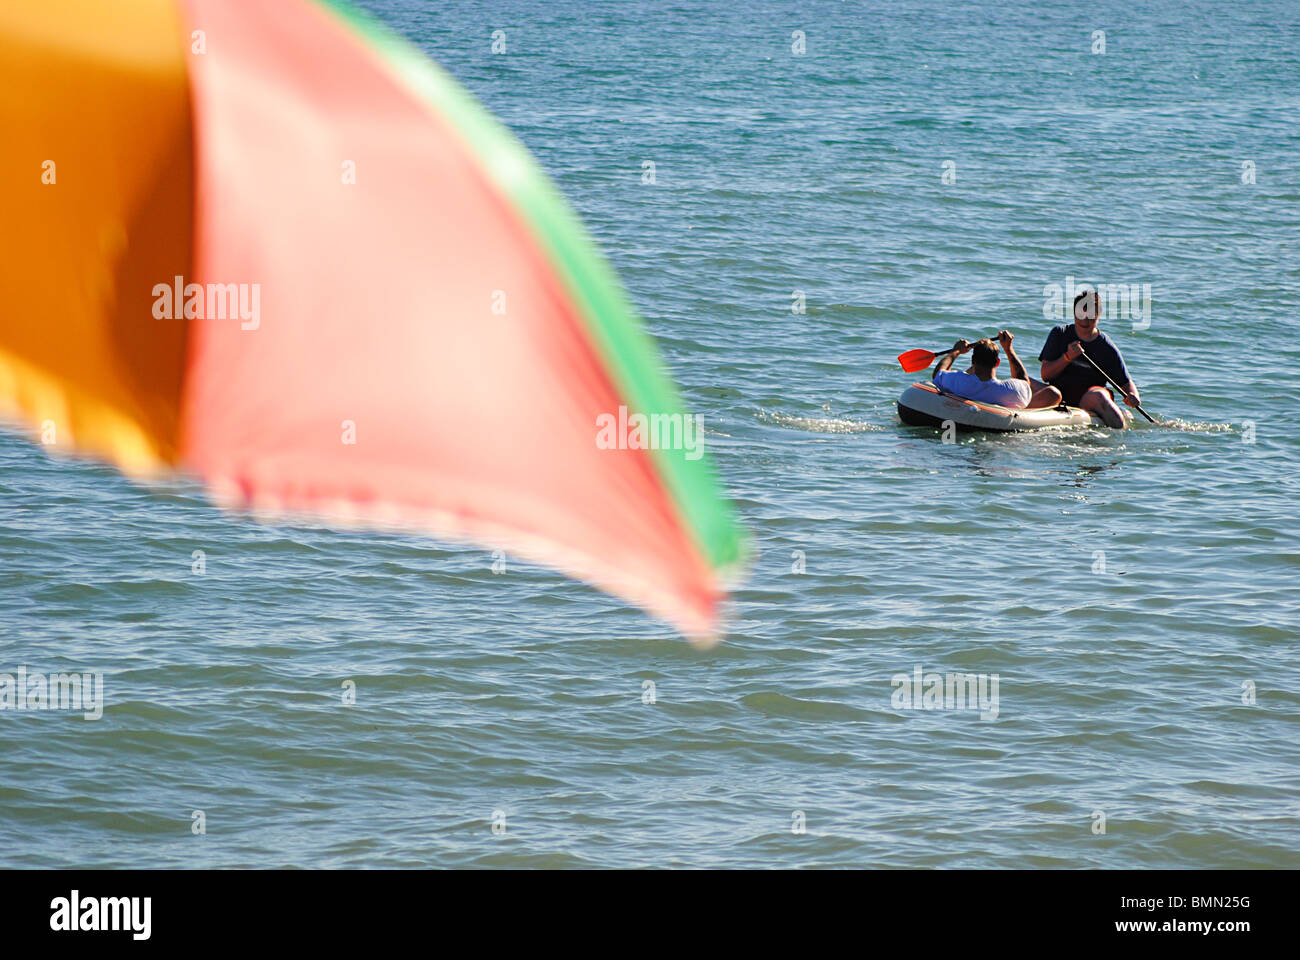 Boyspaddle in an inflatable boat off Charmouth Beach, Dorset, England - Stock Image